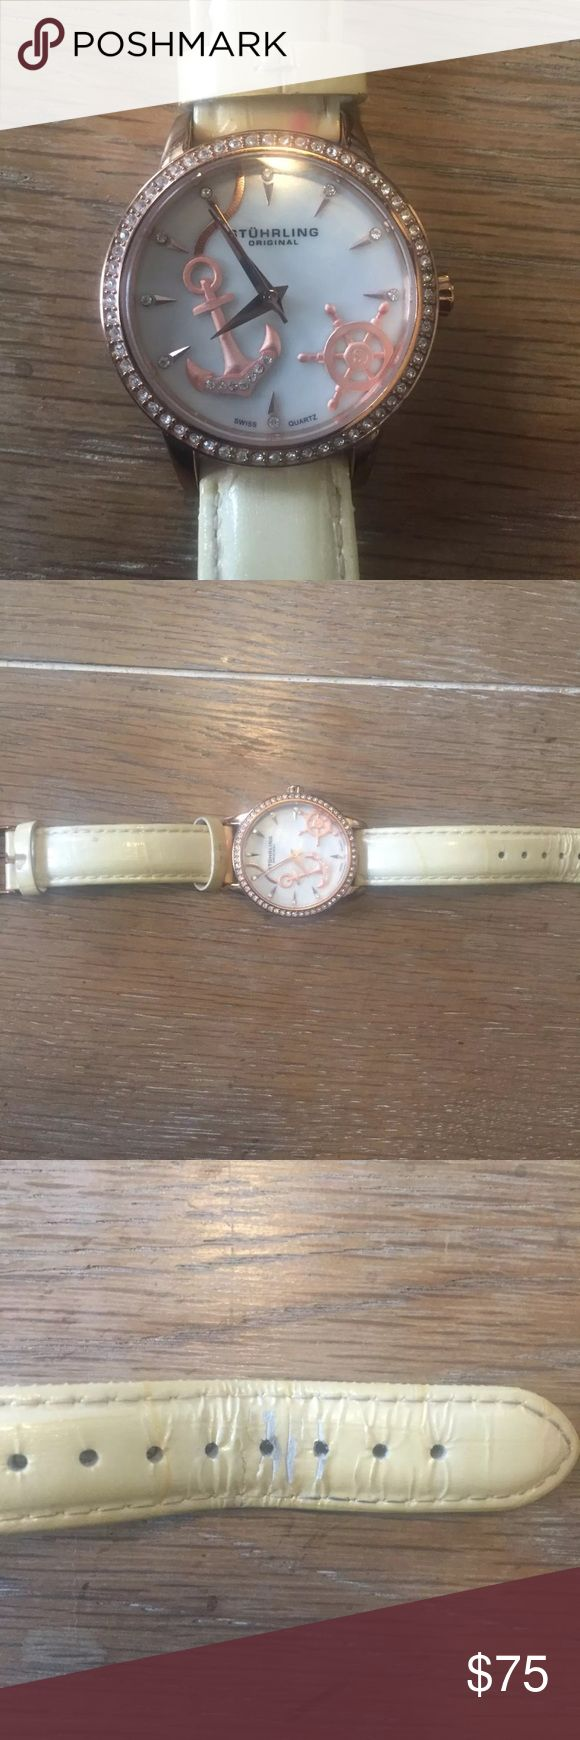 Women's Stührling watch Rose Gold nautical details Women's Stührling anchor watch Rose Gold with nautical details Needs new battery Band is worn but functional Gorgeous piece with crystal detail Stuhrling Original Accessories Watches